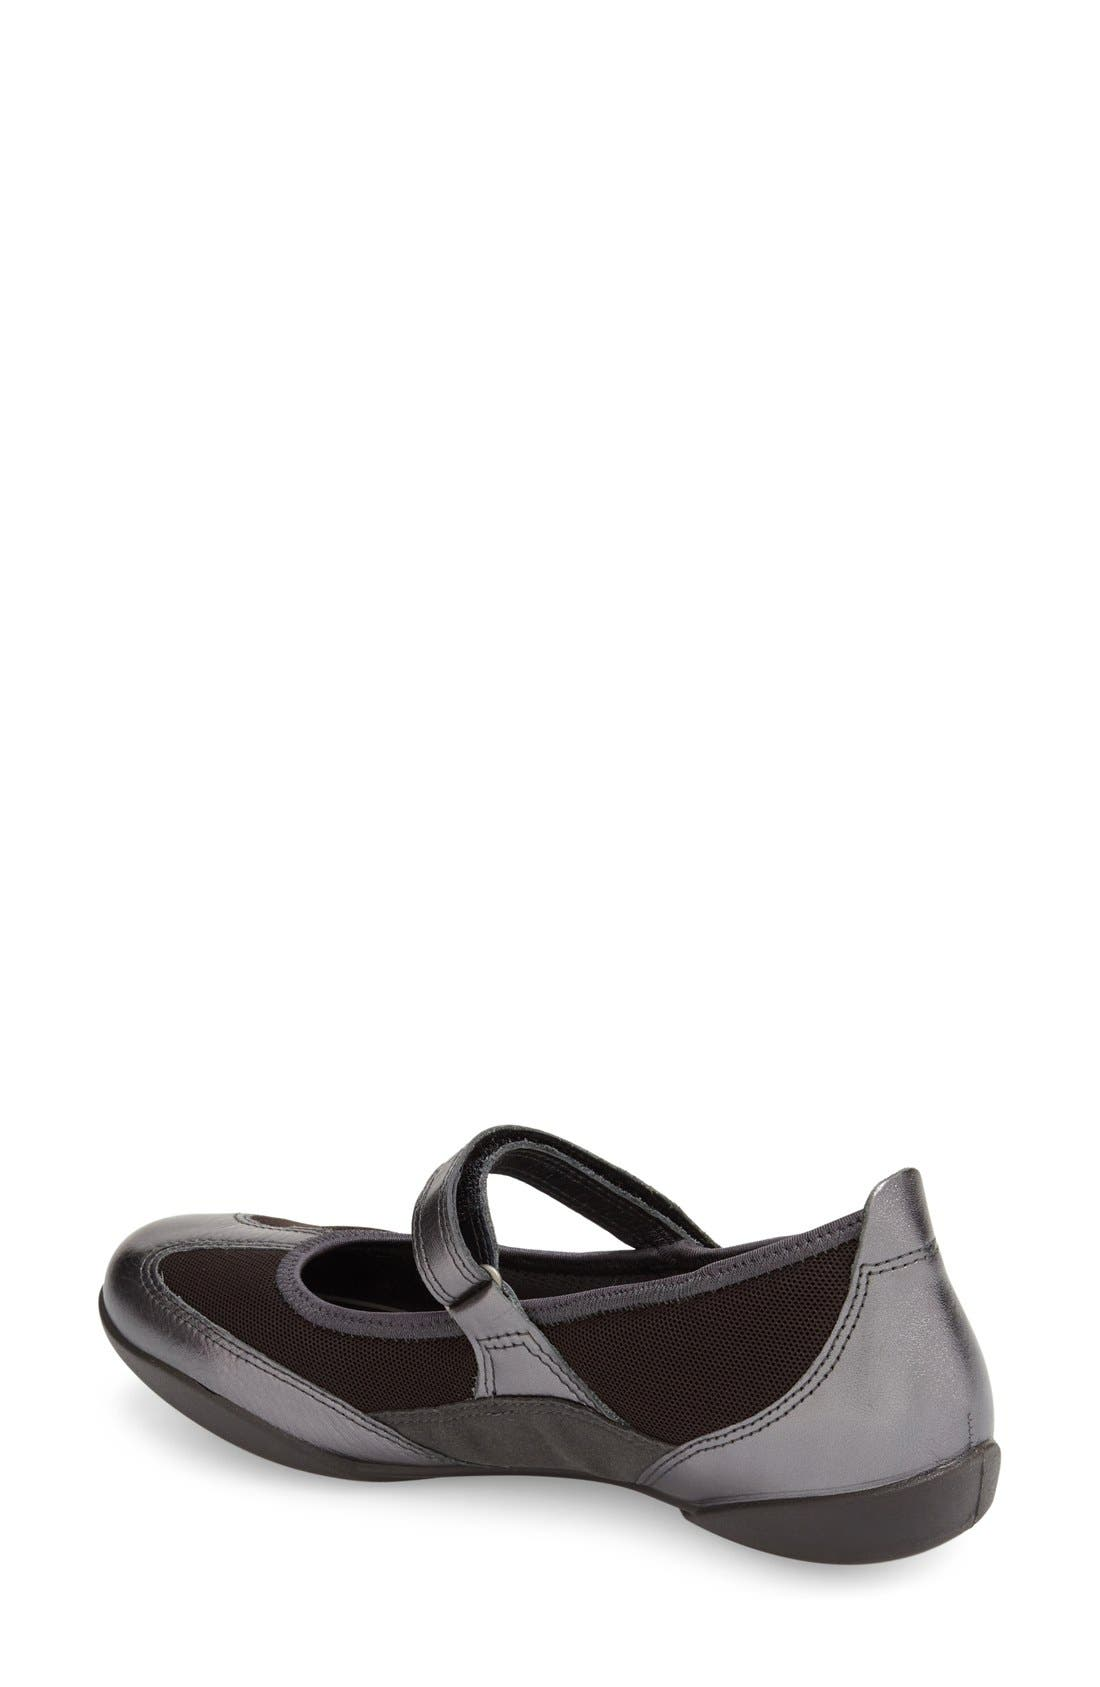 Alternate Image 2  - ECCO 'Bluma' Mary Jane Flat (Women)